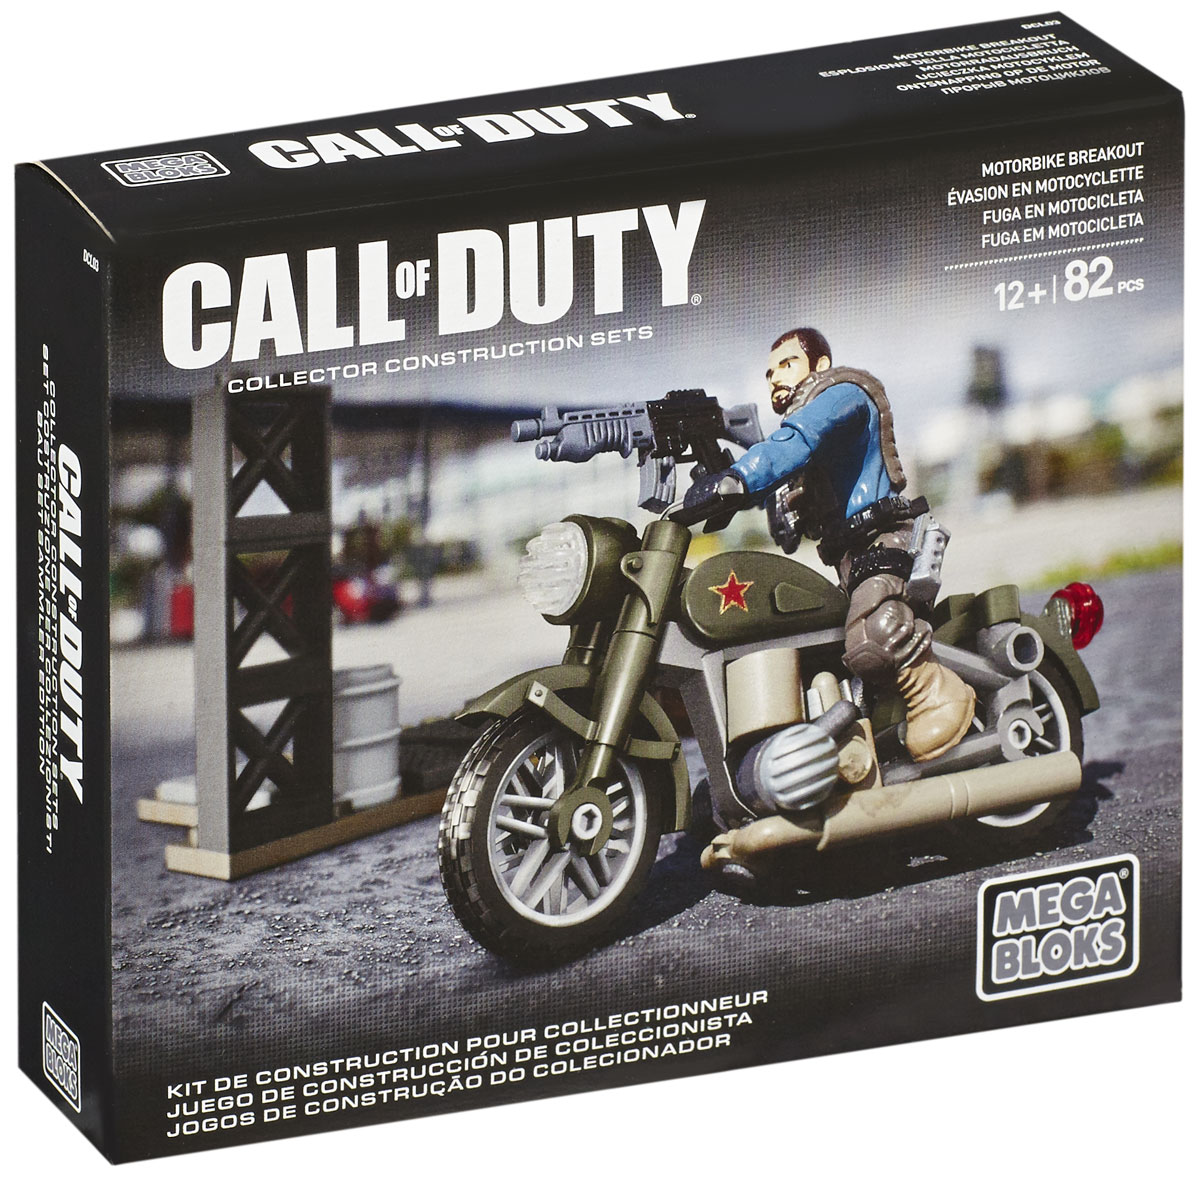 Mega Bloks Call Of Duty Конструктор Motorbike Breakout - Конструкторы